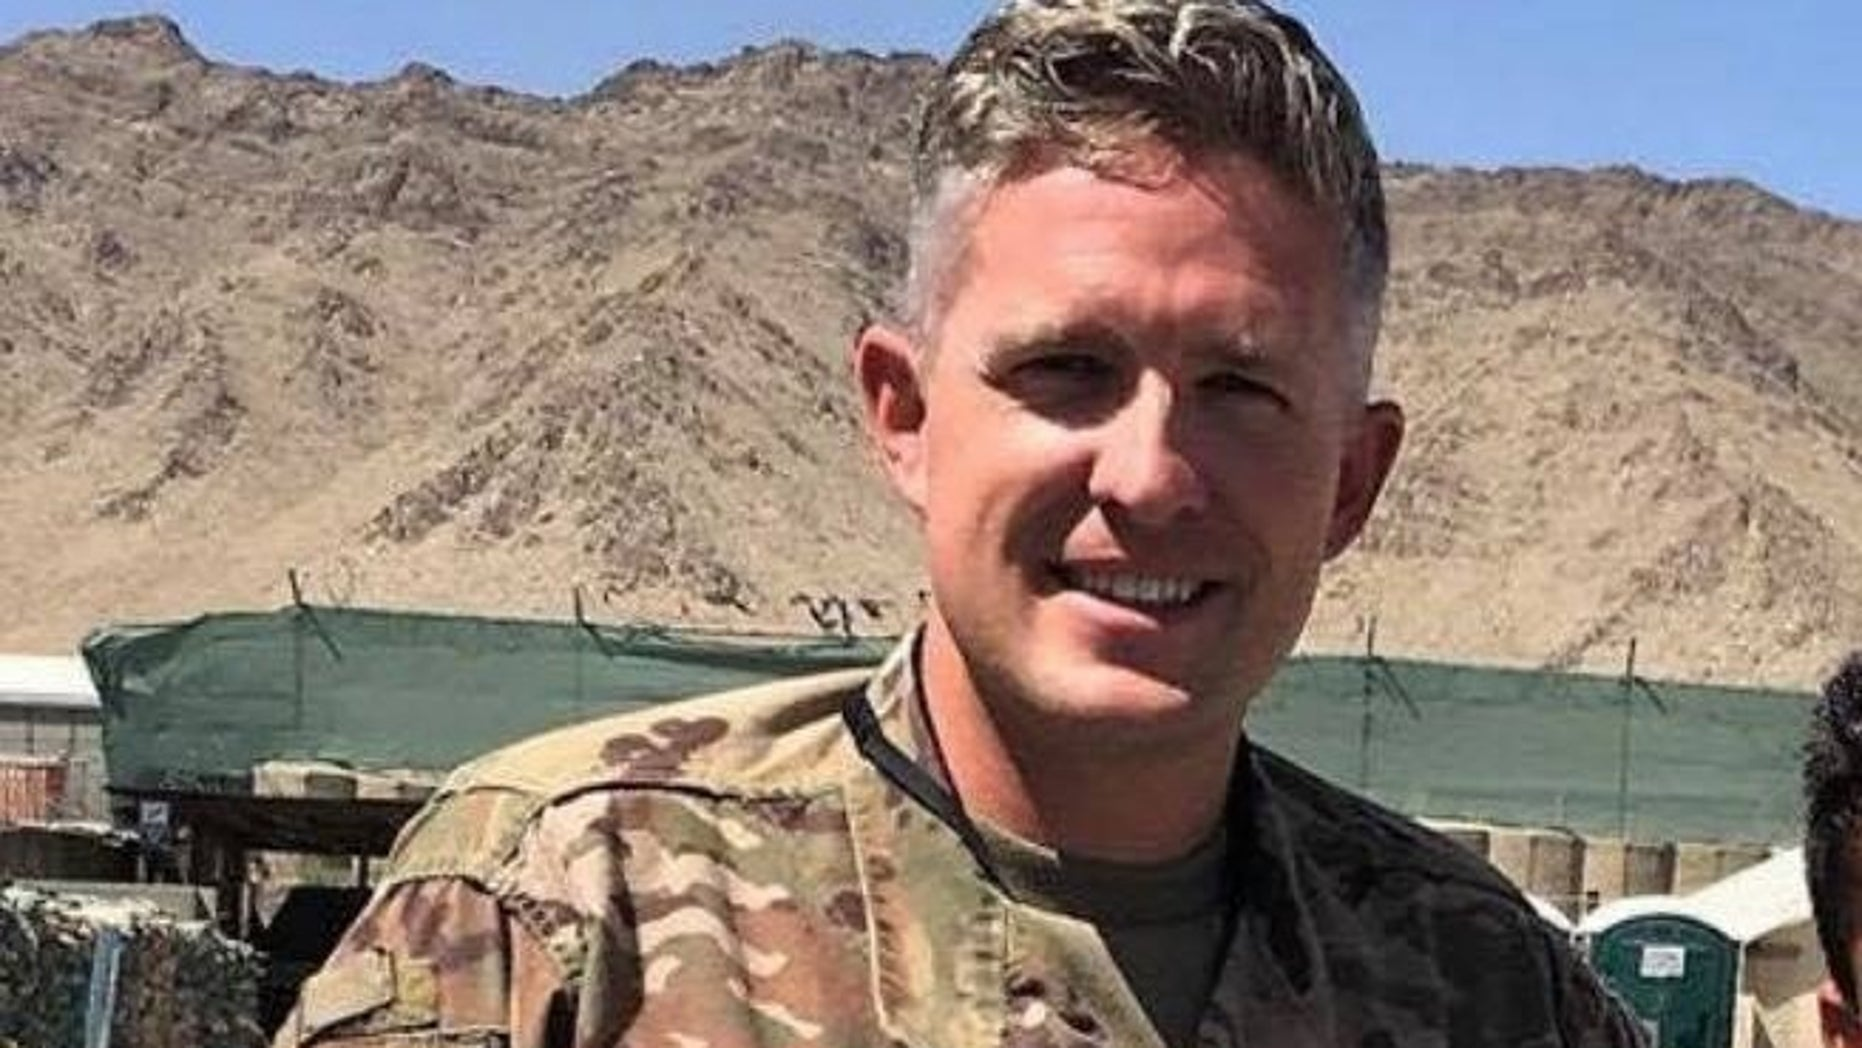 Brent Taylor, a former mayor of North Ogden, Utah, and a member of the state's National Guard, was killed in Afghanistan on Saturday.